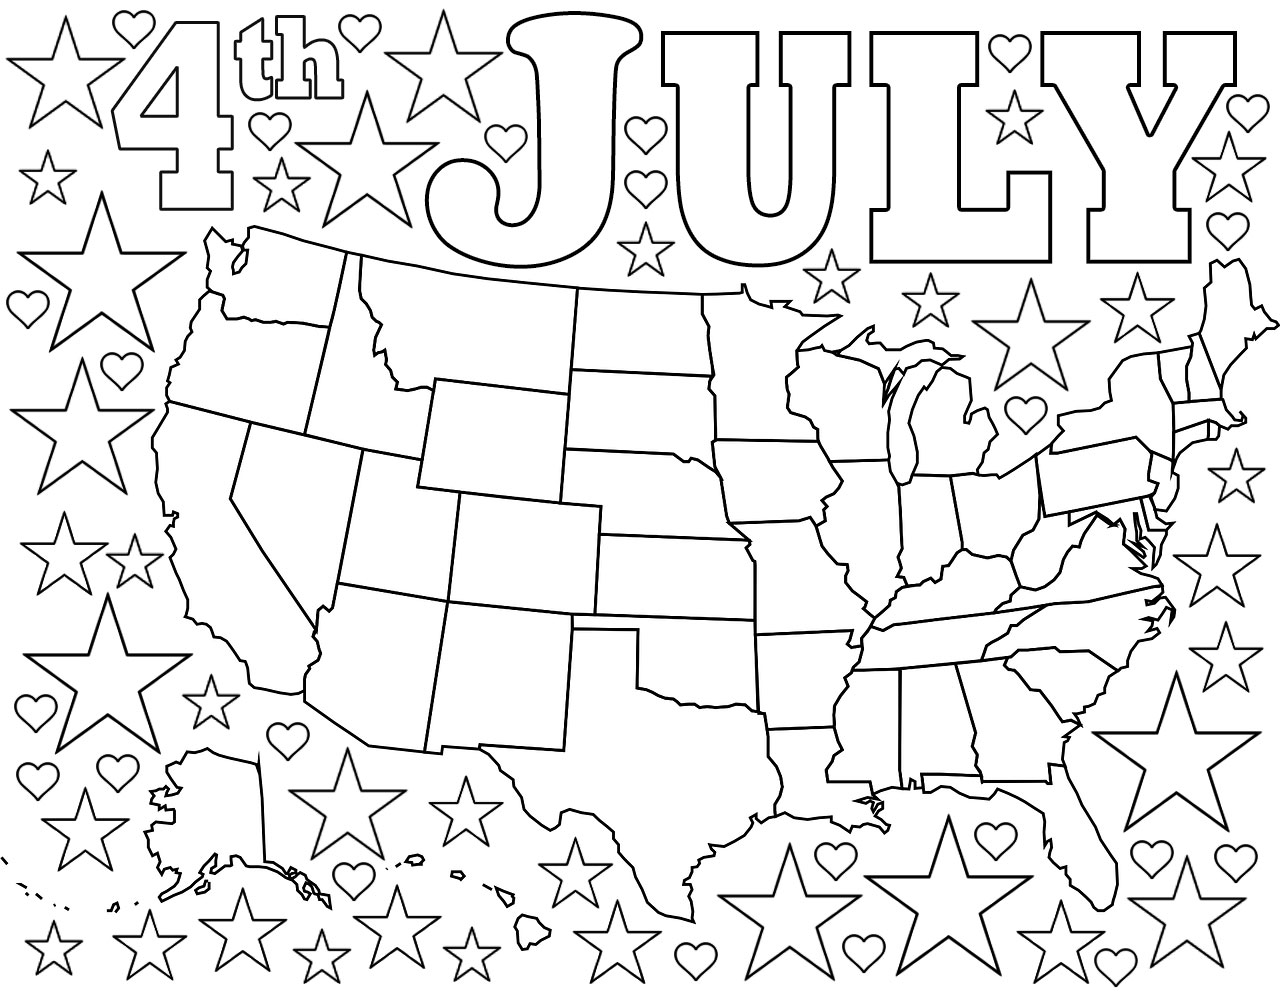 4th July Coloring Page Map Of Usa With Stars And Hearts